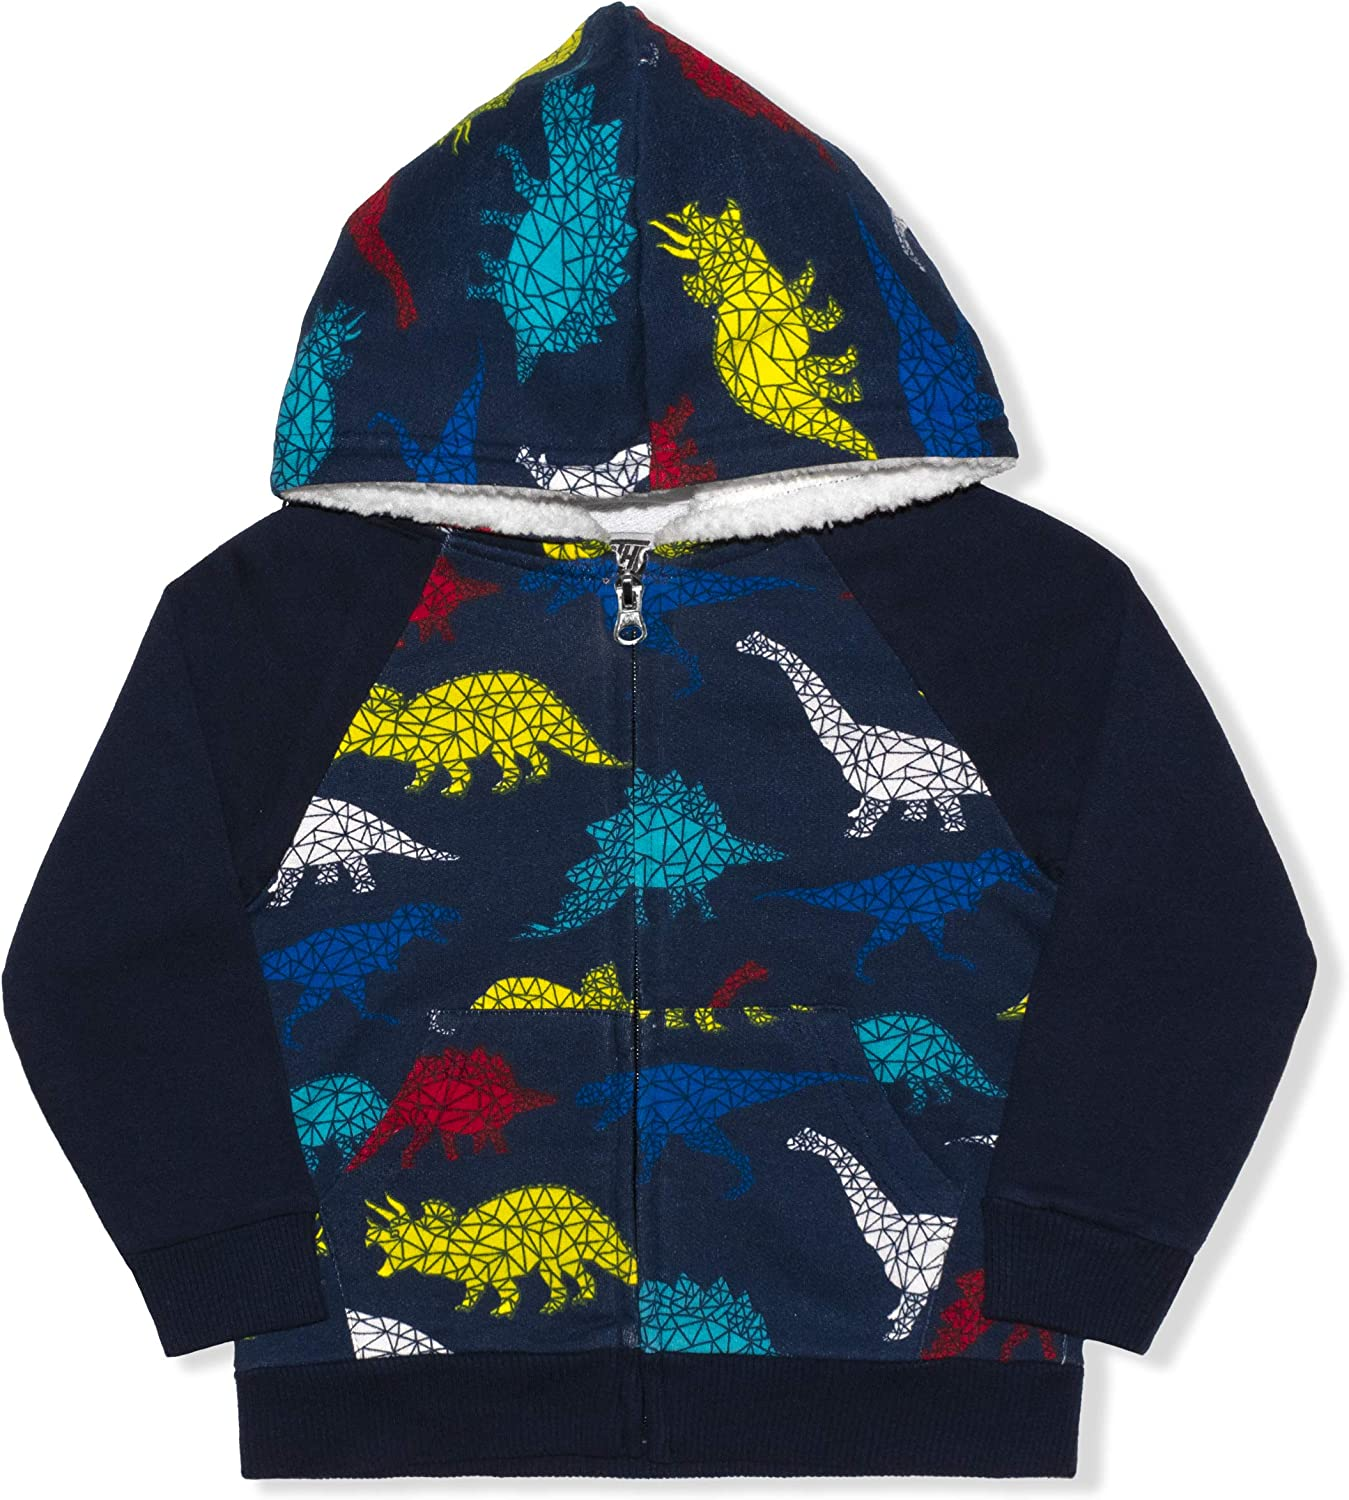 10 Threads Dino Zip Up Hoodie with Pockets for Boys, Front Zip Jacket for Toddlers